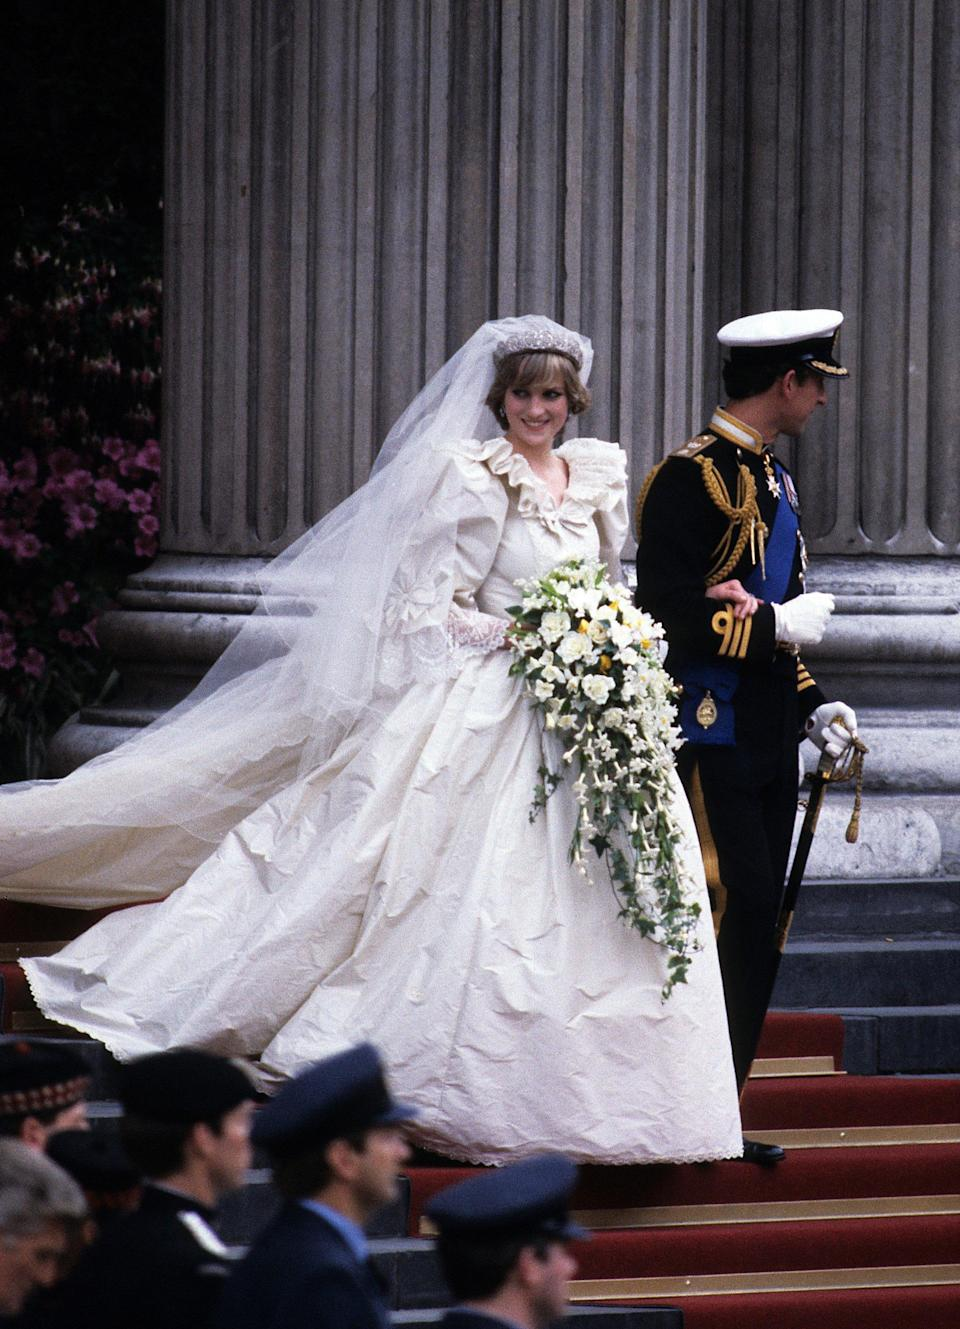 As she leaves St. Paul Cathedral, Diana officially became known as the Princess of Wales.